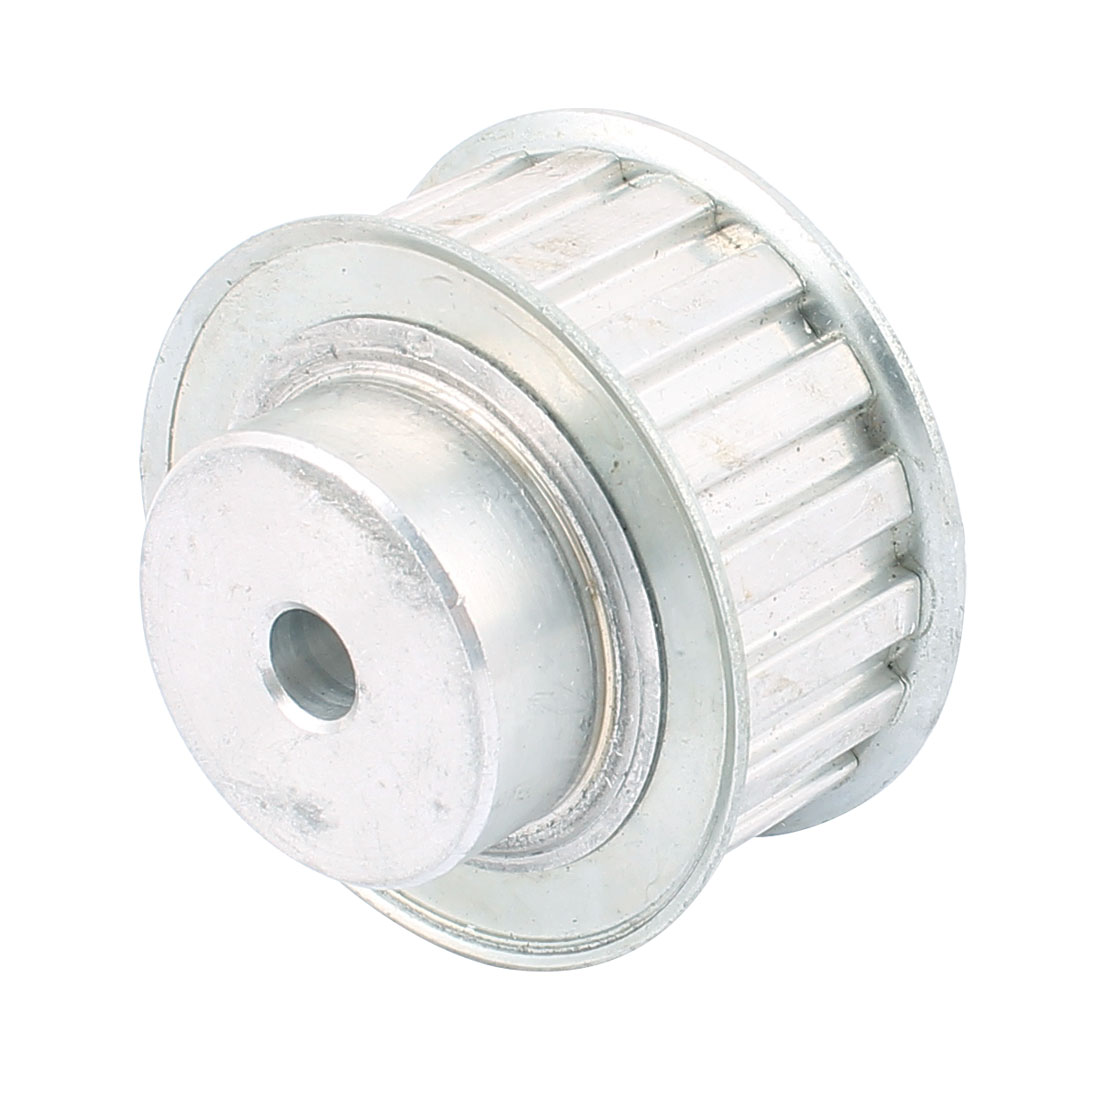 XL18 21mm Belt Width 8mm Bore 18 Teeth Synchronous Timing Pulley Silver Tone